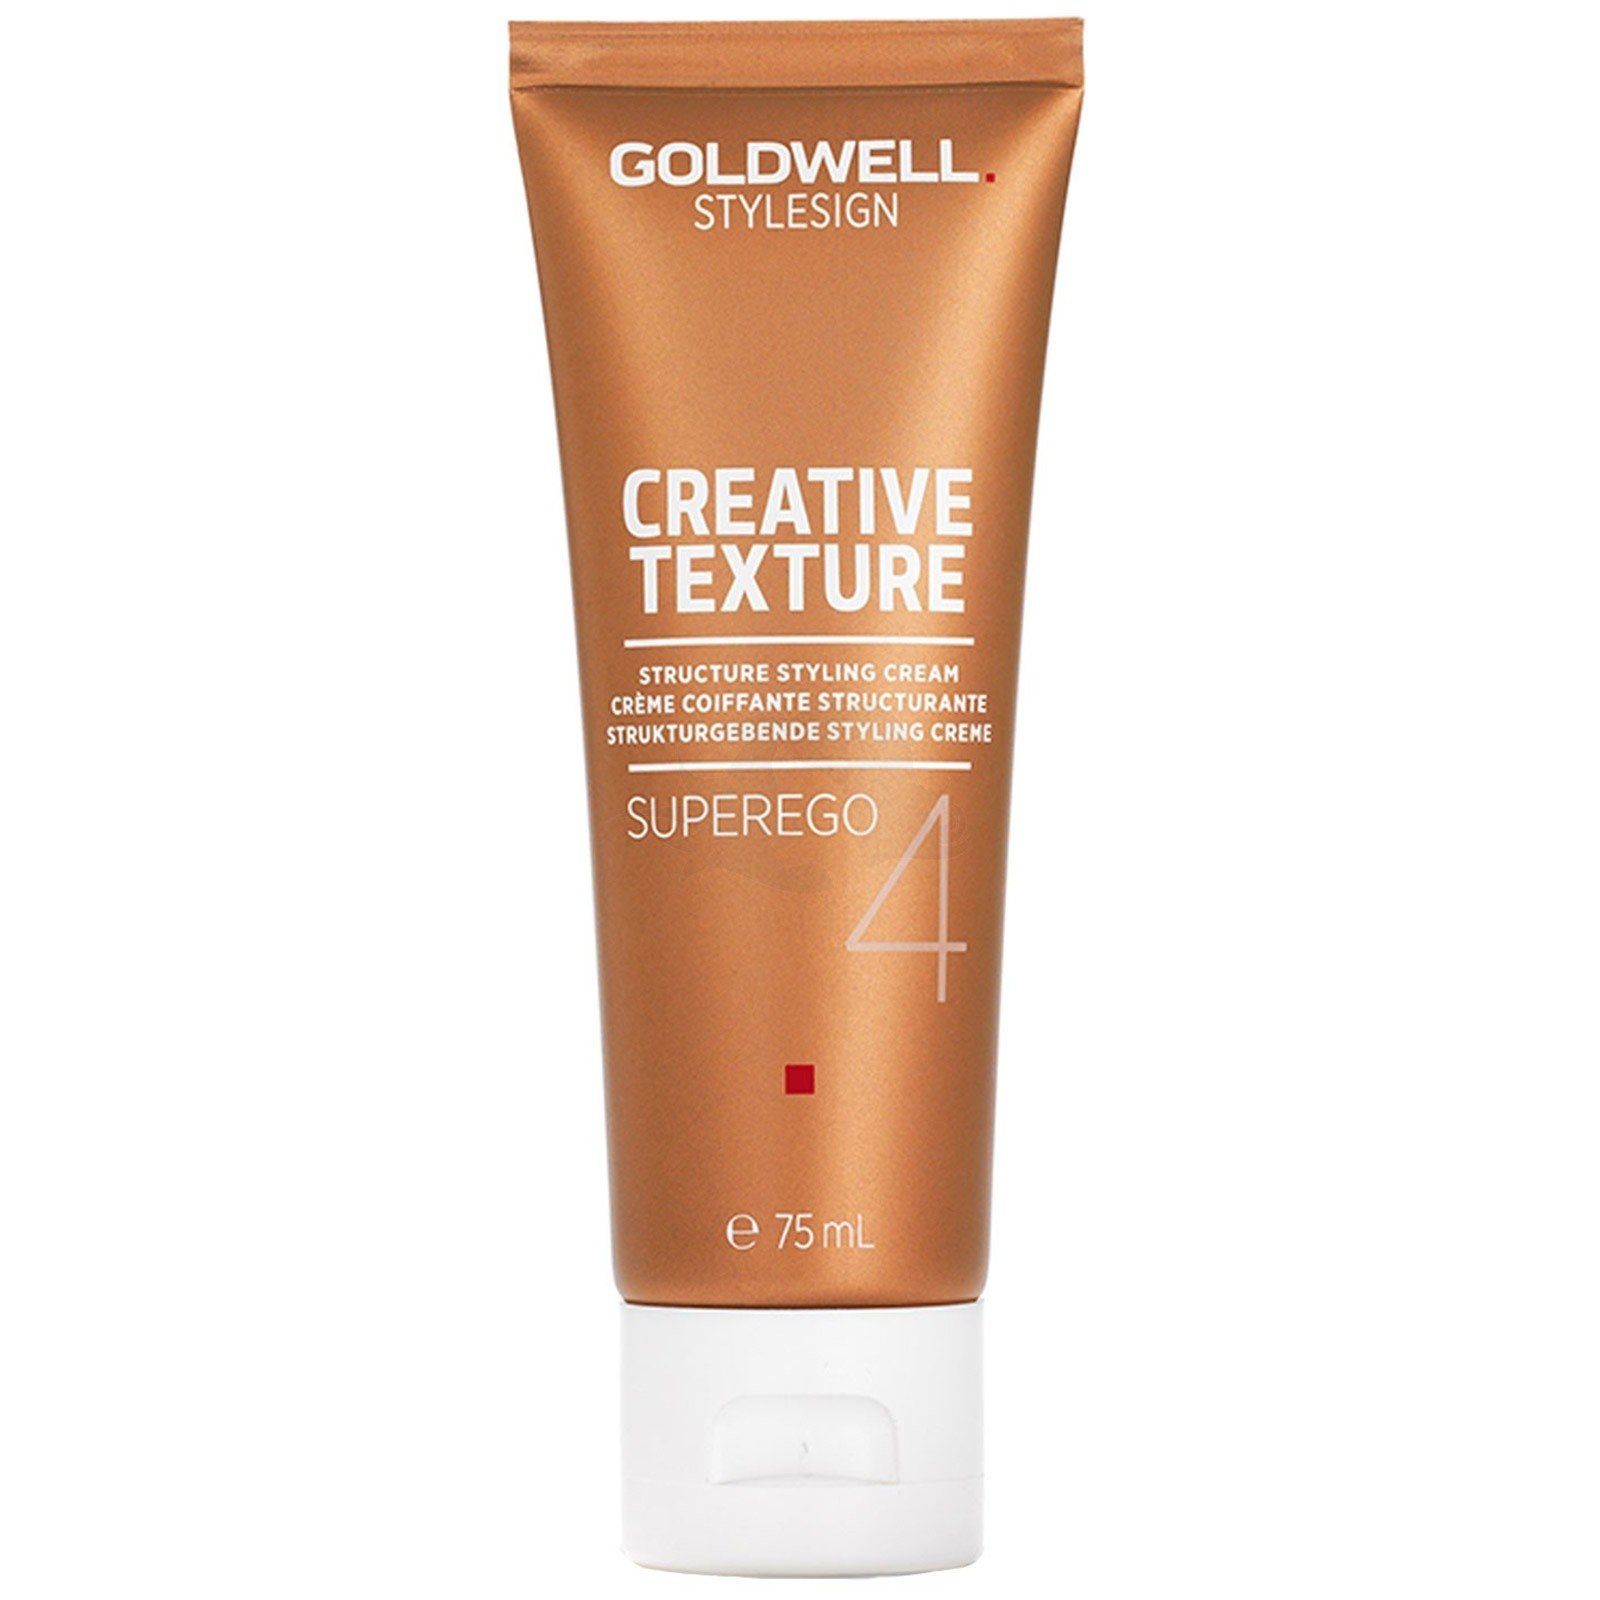 Goldwell Creative Texture Superego 75 ml